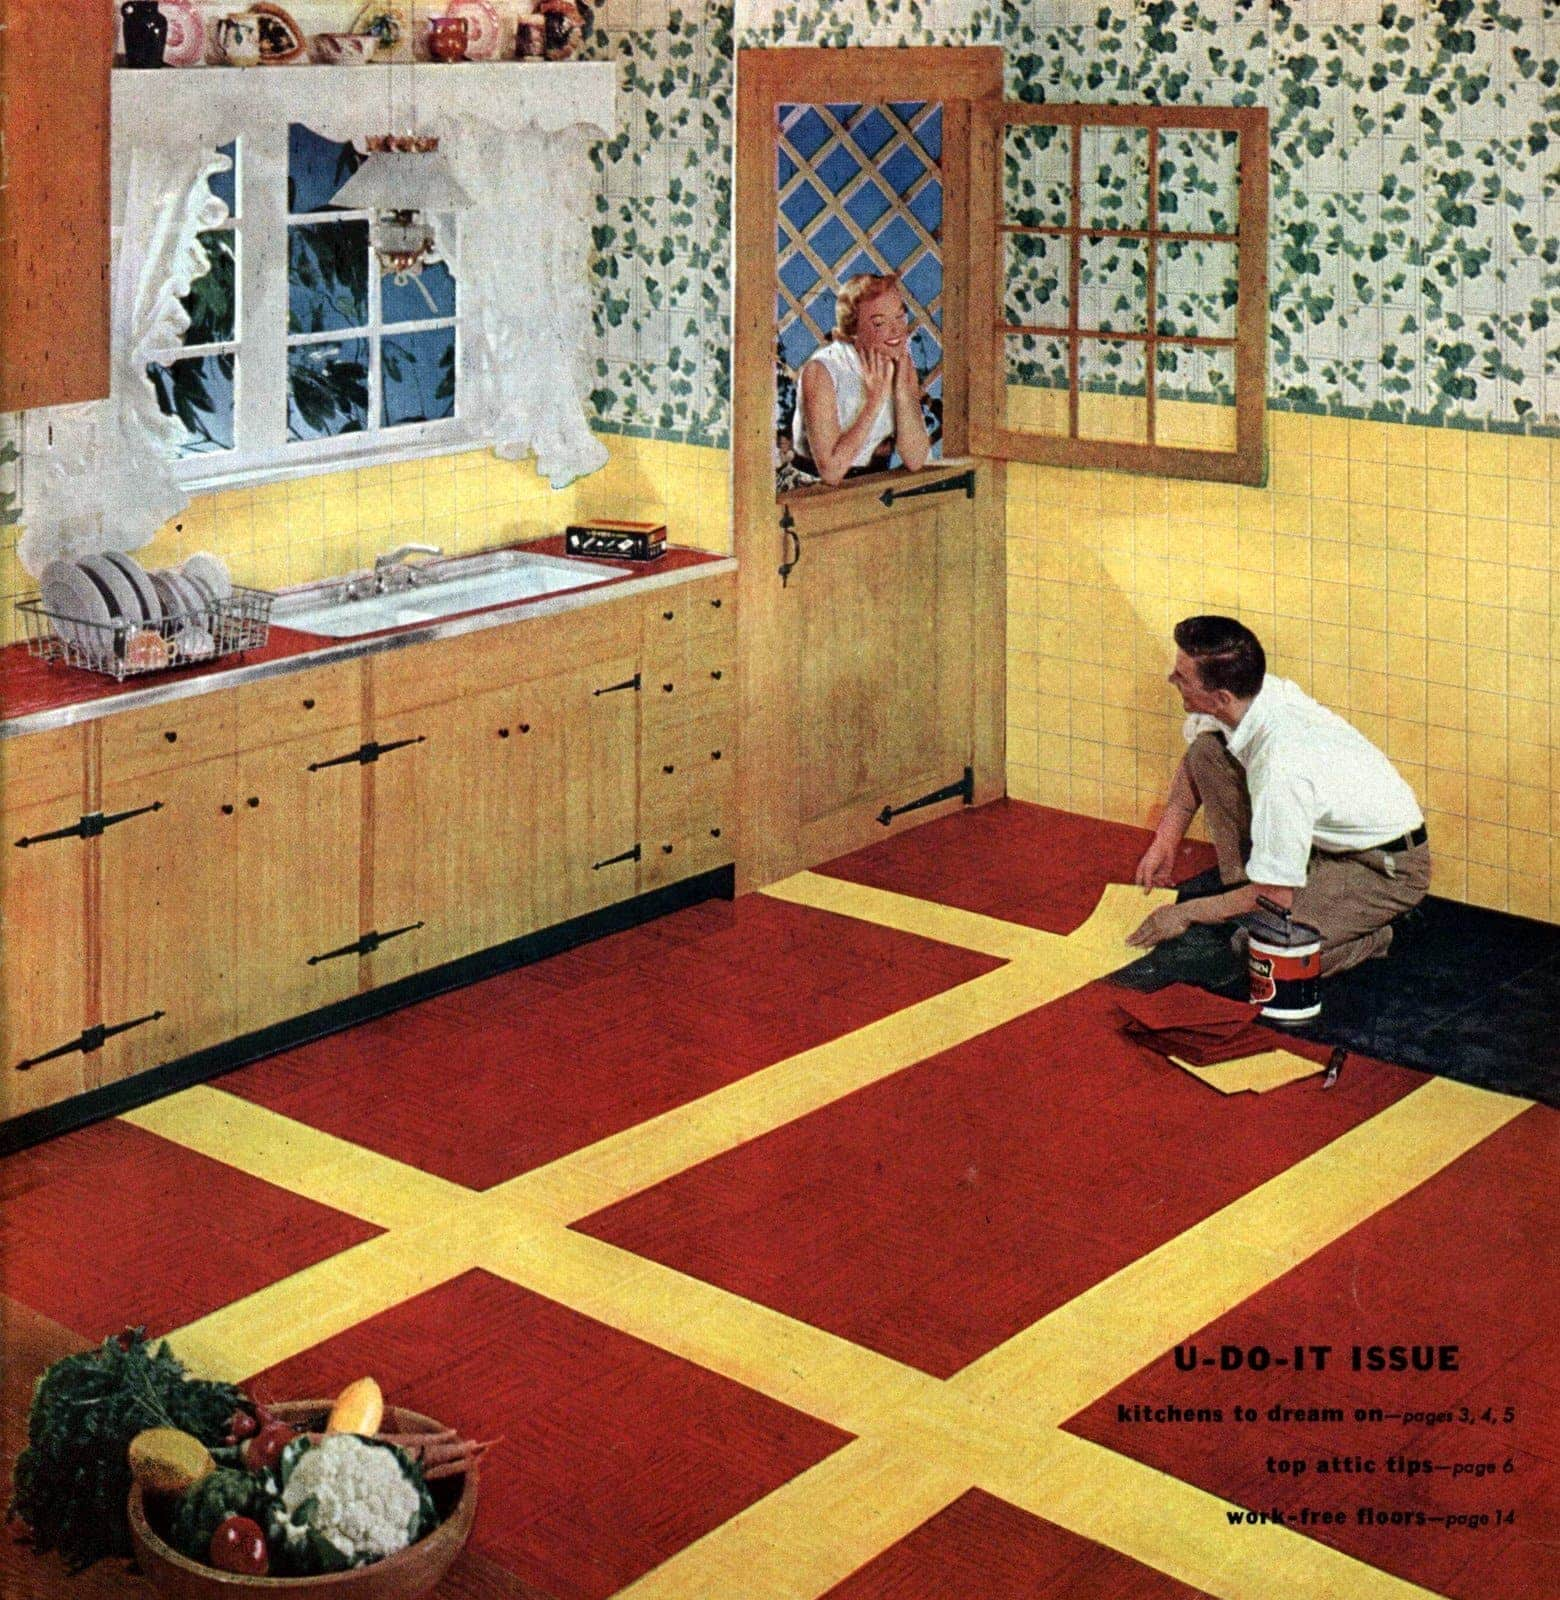 Huge Floor Patterns Retro Home Decor From The 50s 3